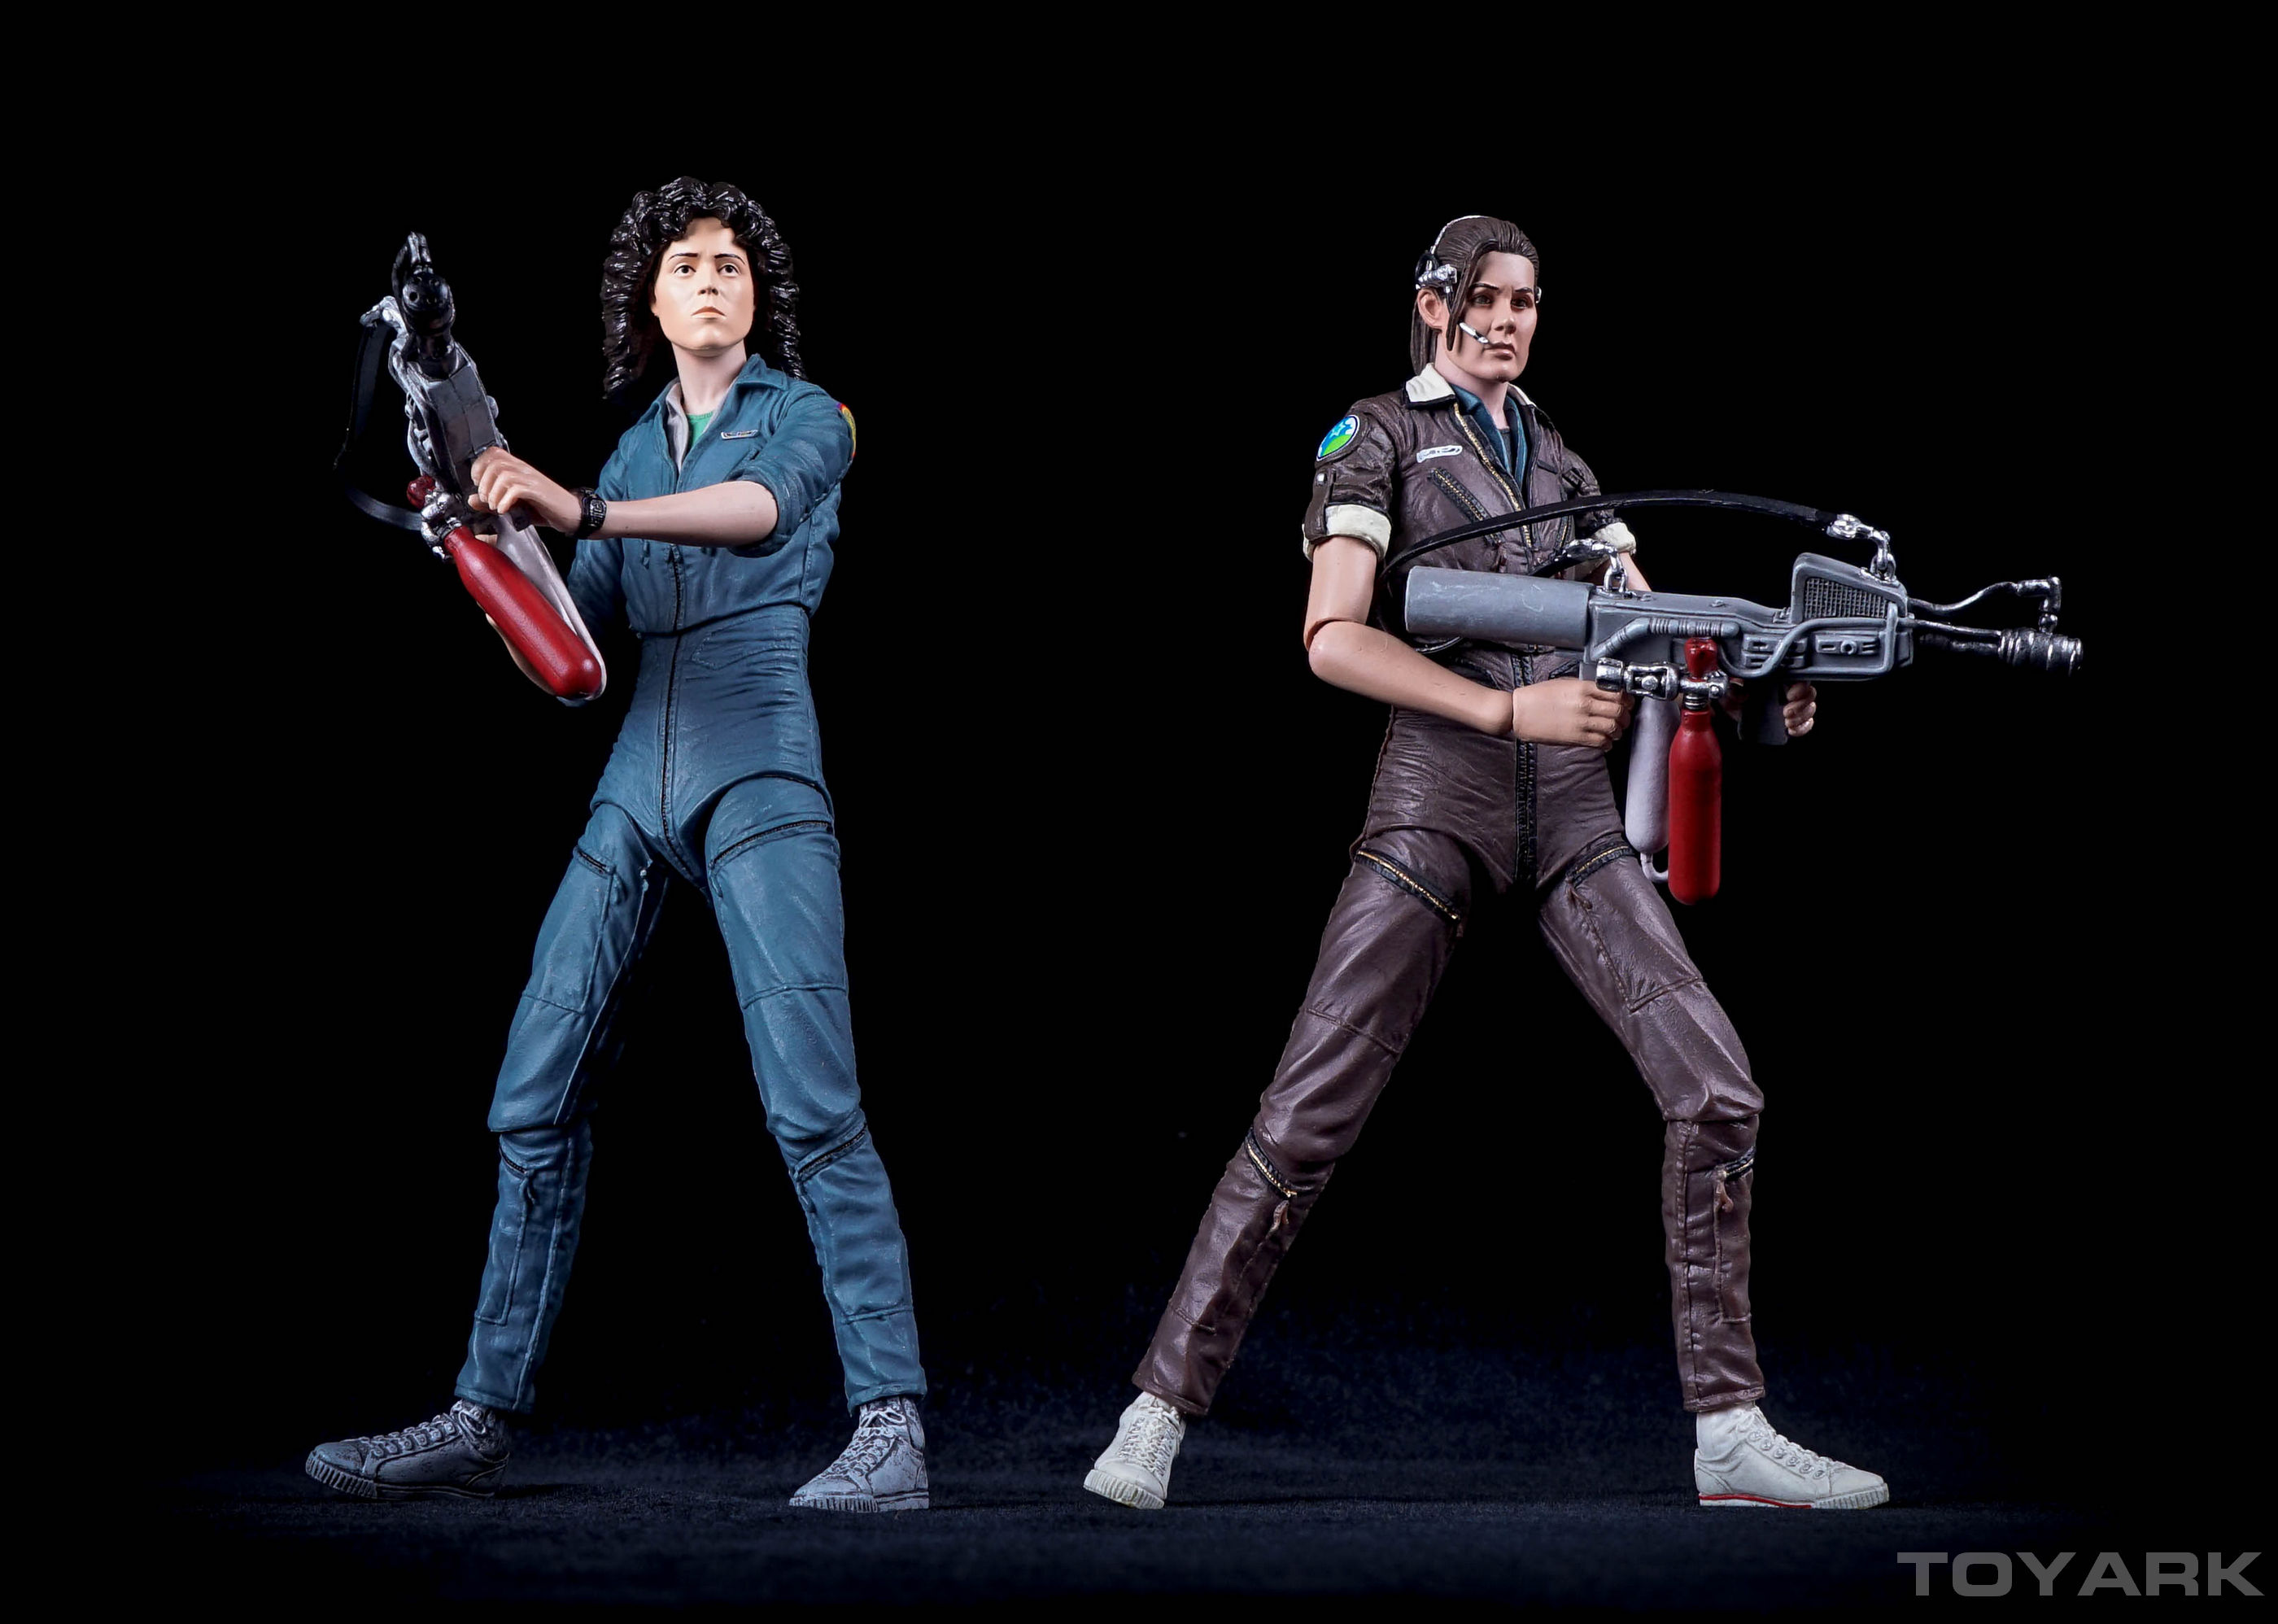 http://news.toyark.com/wp-content/uploads/sites/4/2015/12/NECA-Alien-Isolation-061.jpg